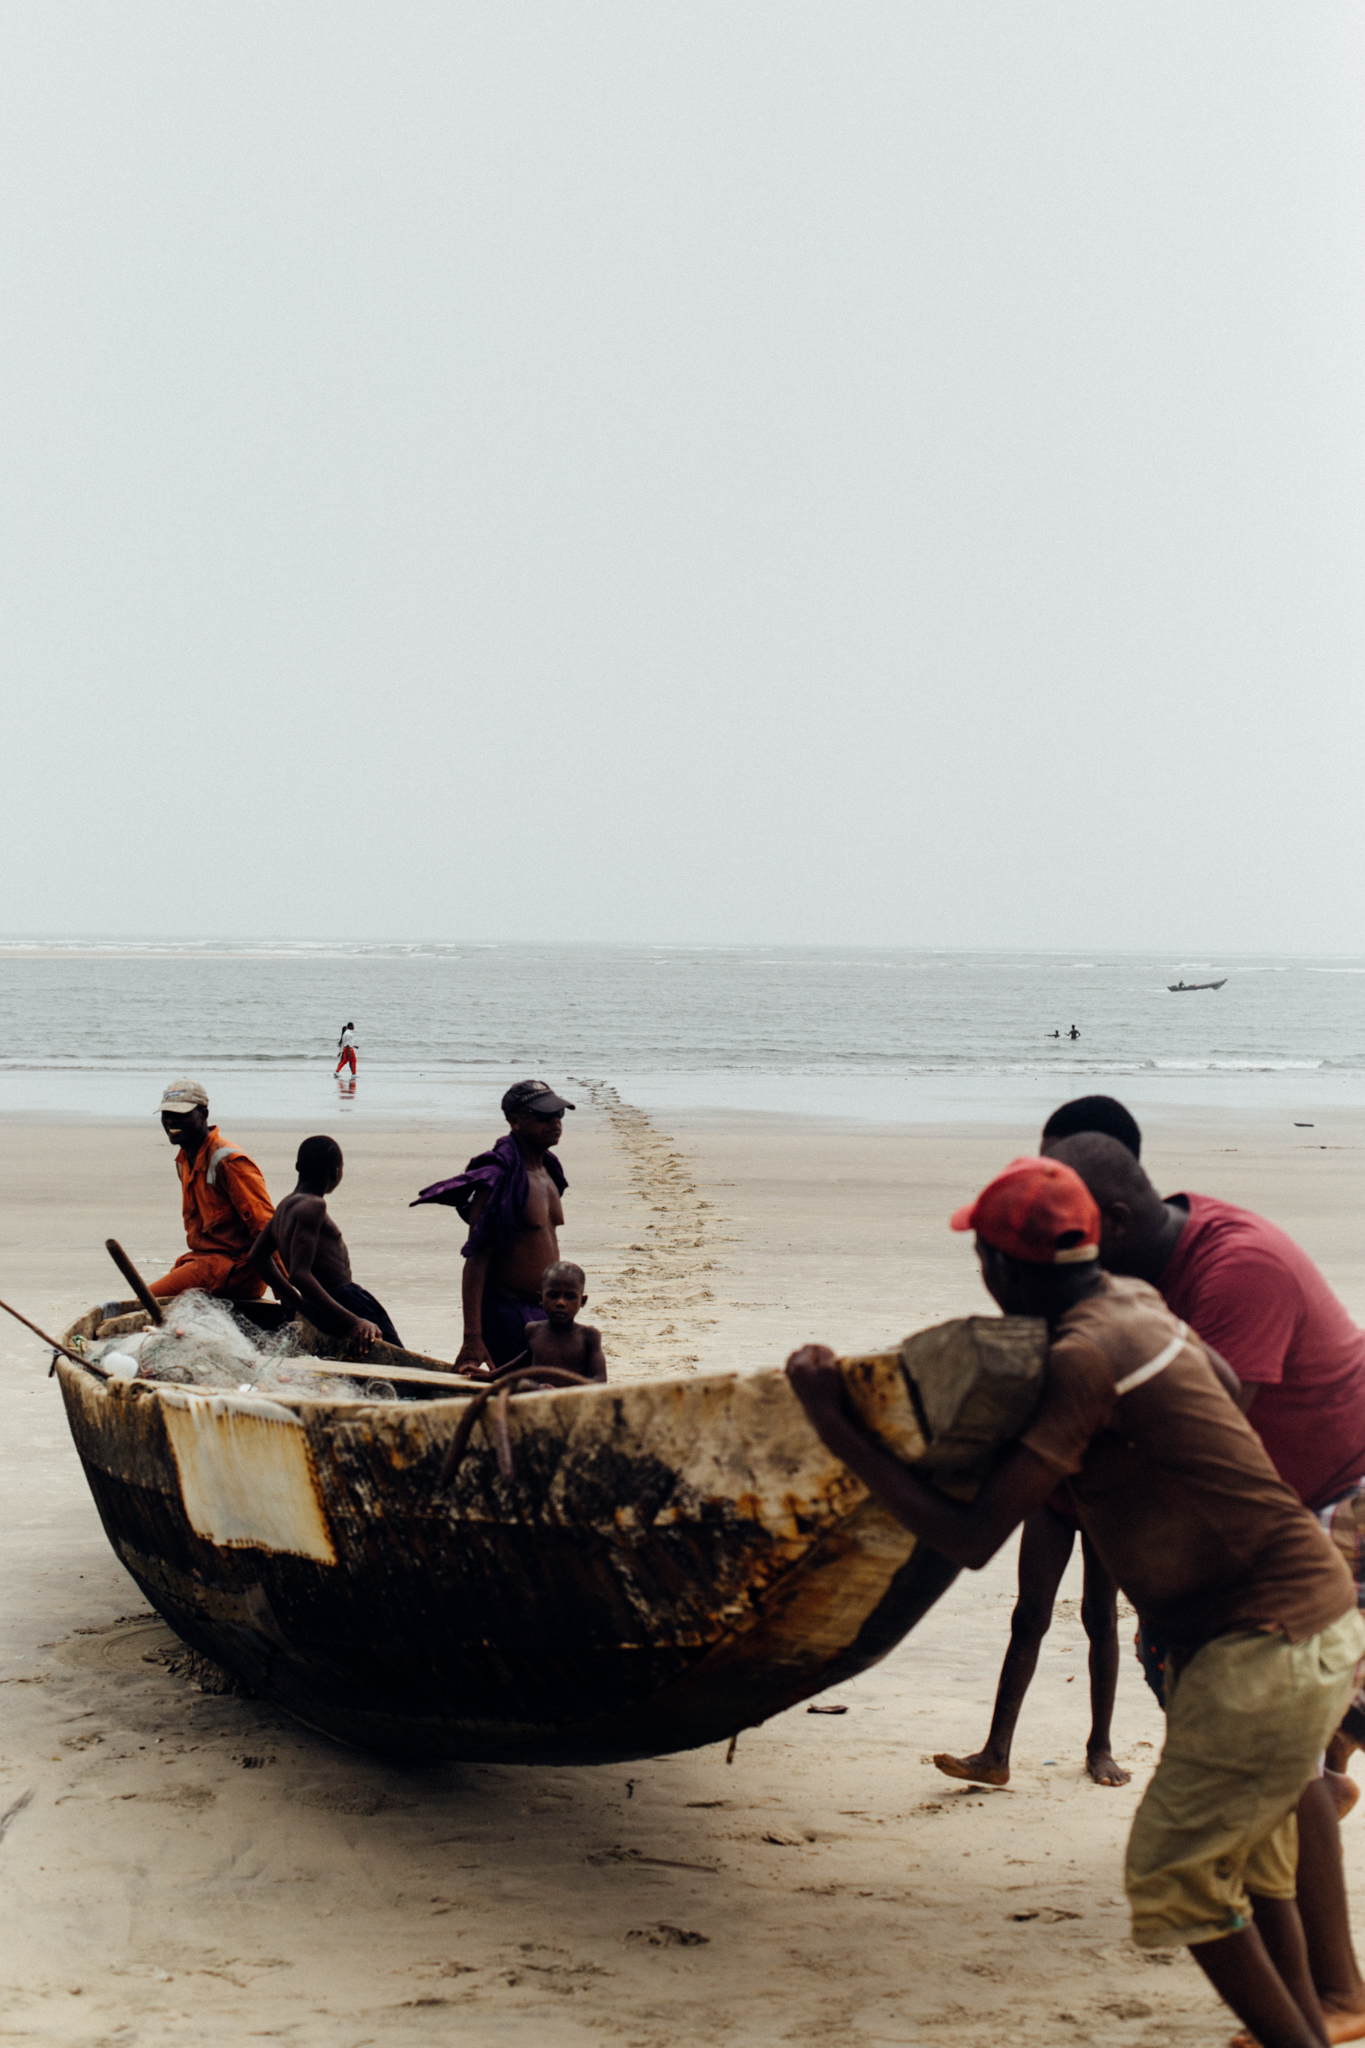 Fishermen bringing the boat home, Ibeno Beach